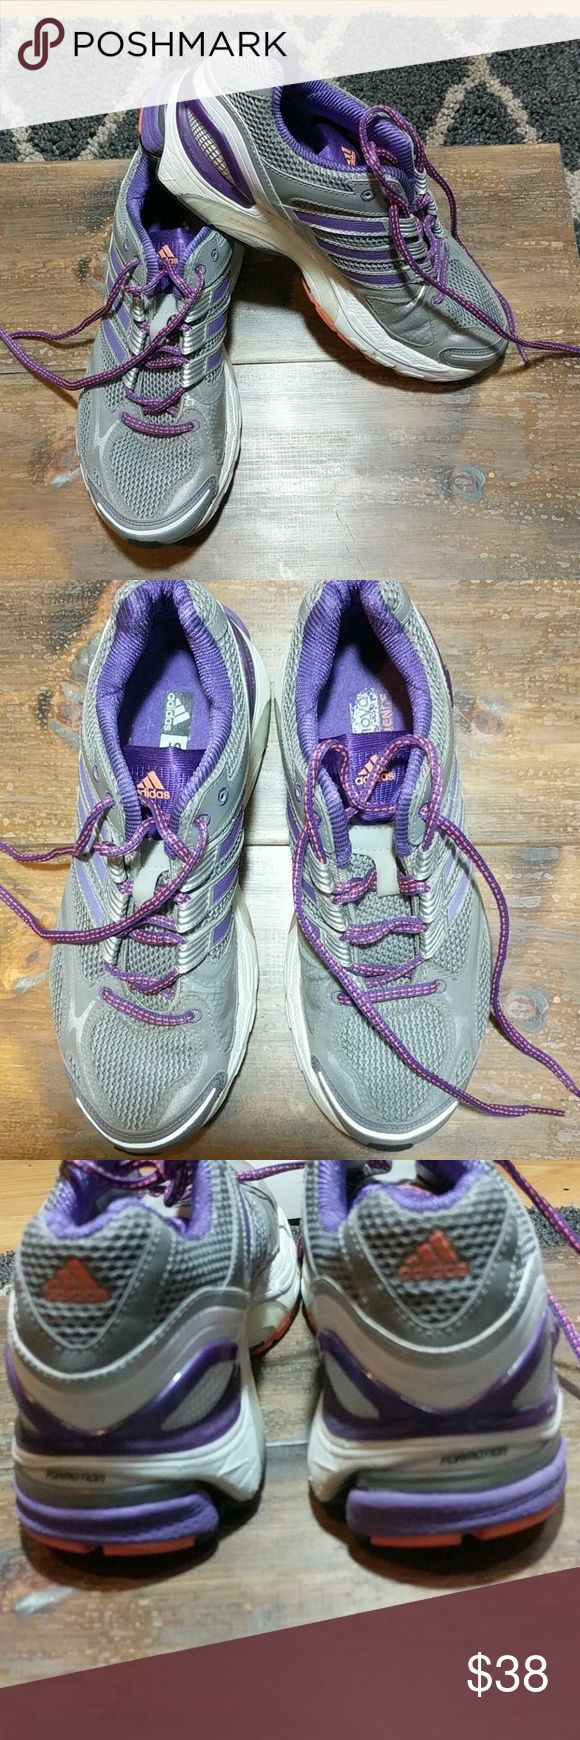 Adidas Supernova Sequence Running Shoes size 8 GUC, gray and purple running shoes adidas Shoes Sneakers